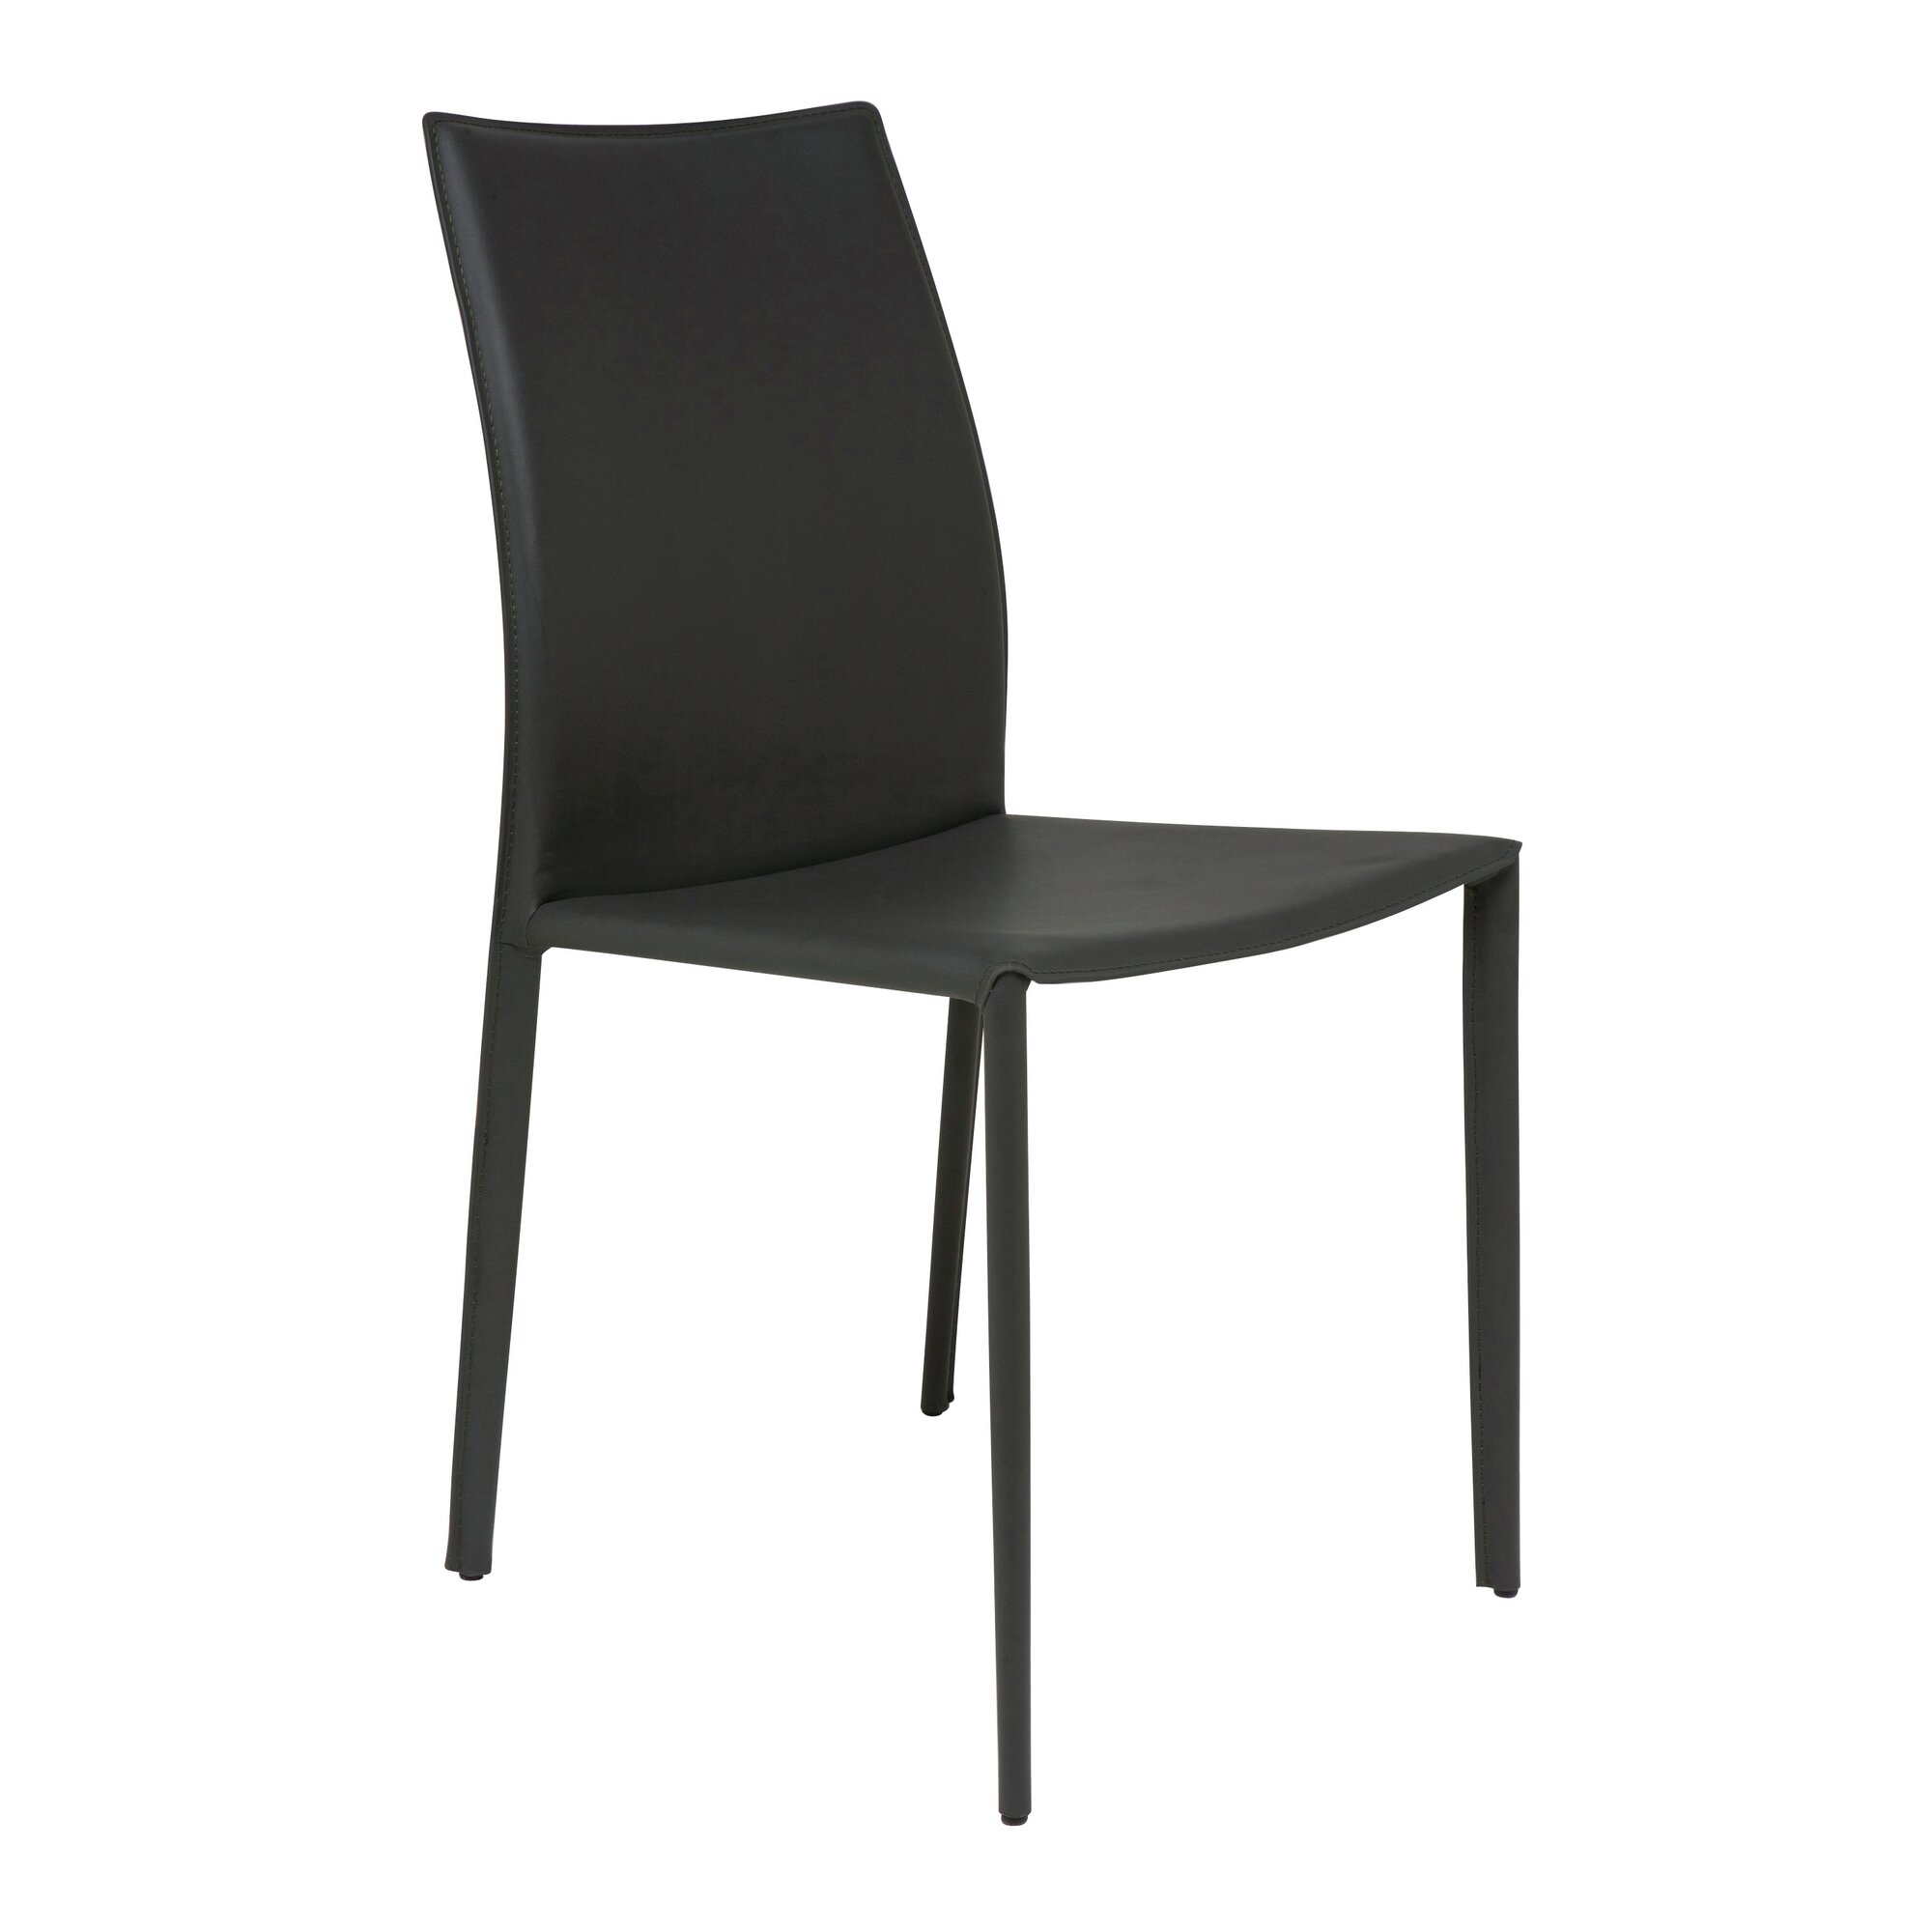 Black upholstered dining chairs - Sienna Genuine Leather Upholstered Dining Chair